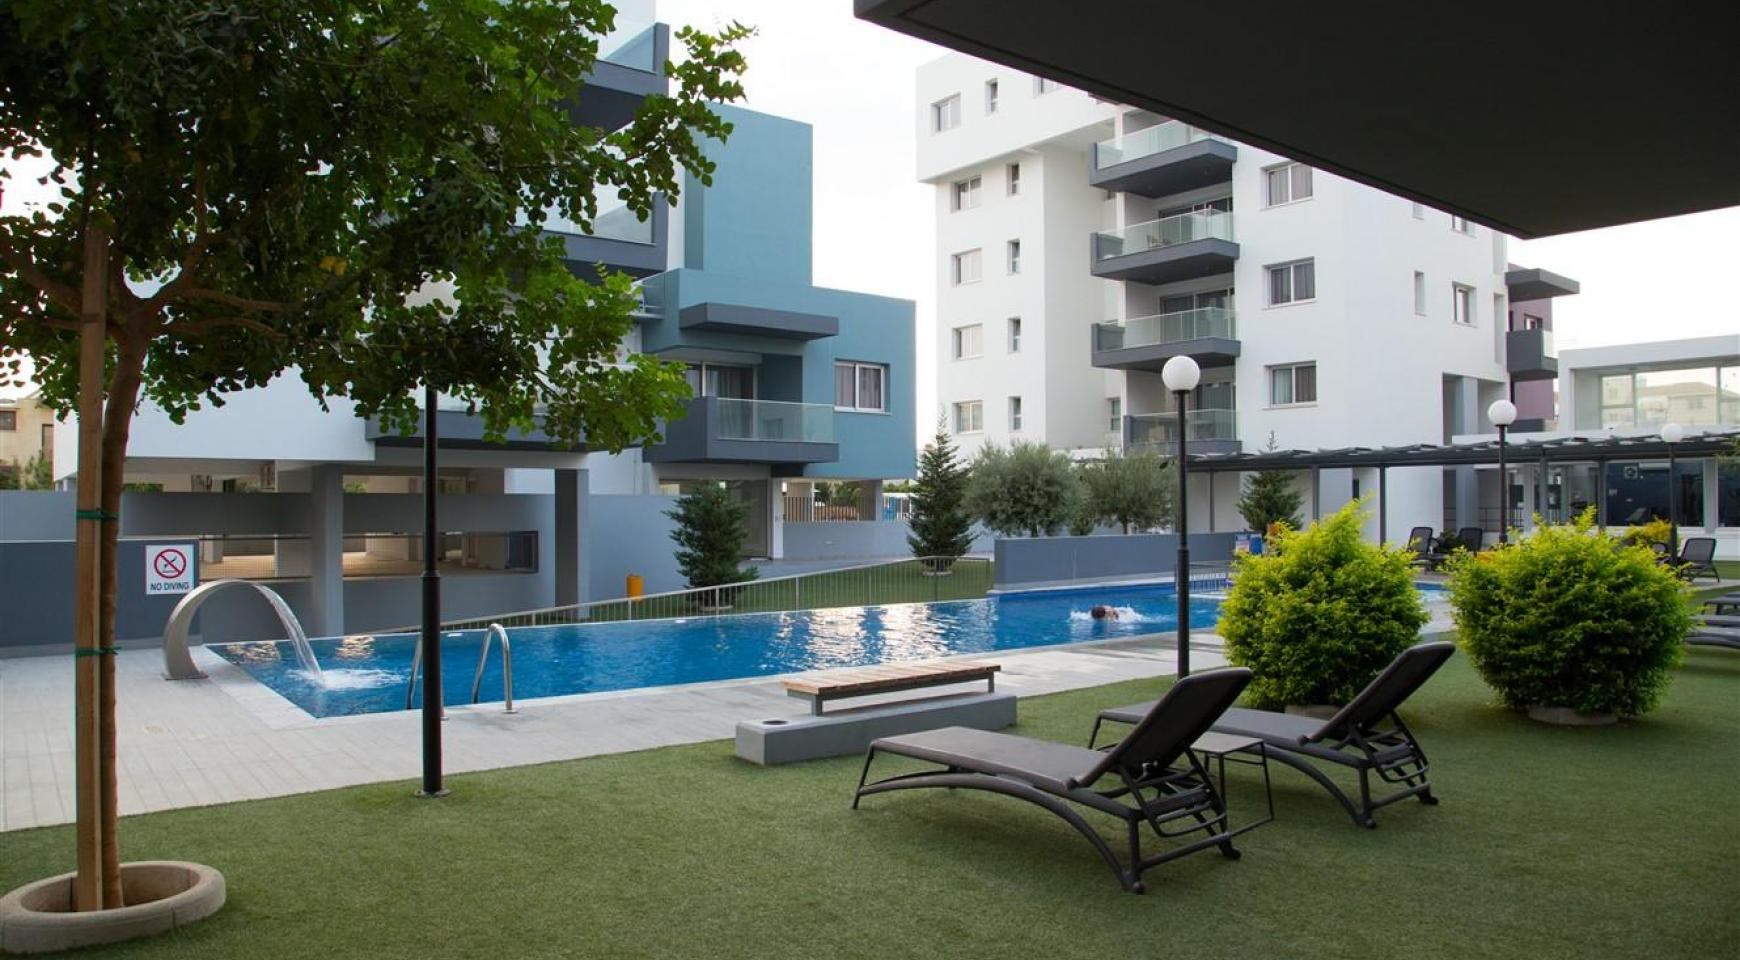 Elite 3 Bedroom Penthouse with private Swimming Pool on the Roof - 6